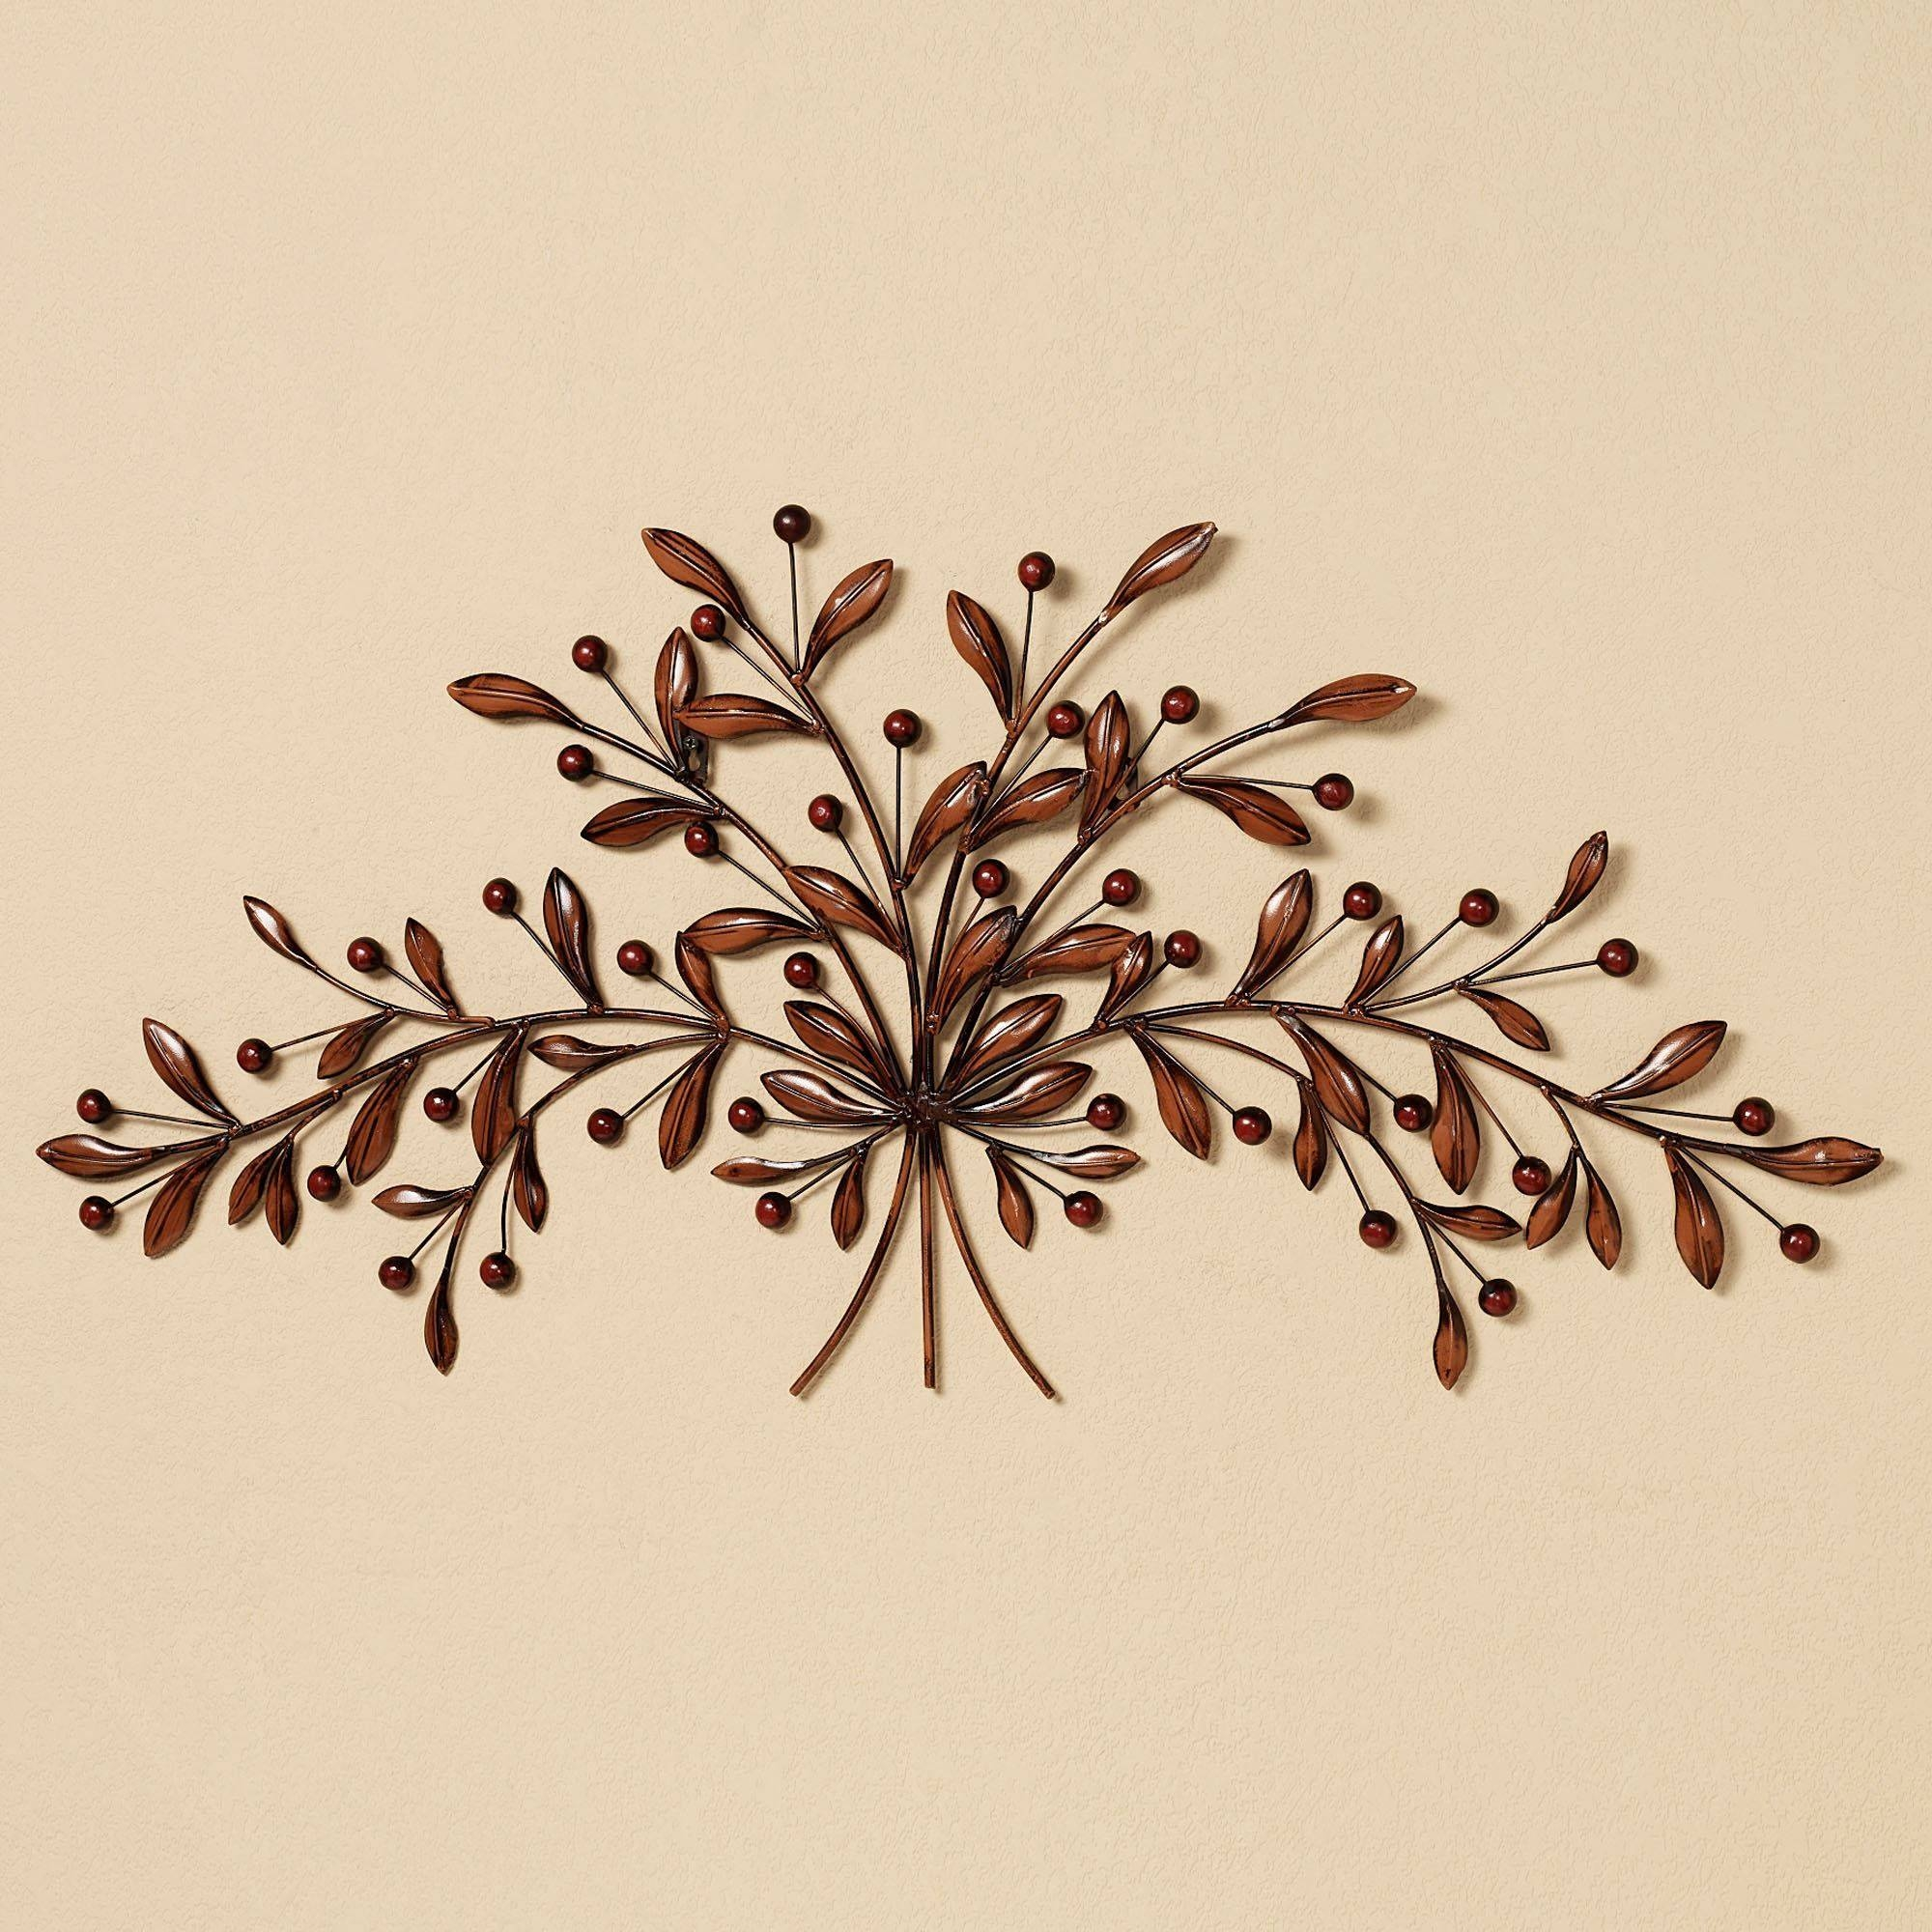 Cantabria Branch Metal Wall Art Spray Pertaining To 2018 Metal Wall Art Leaves (View 5 of 20)